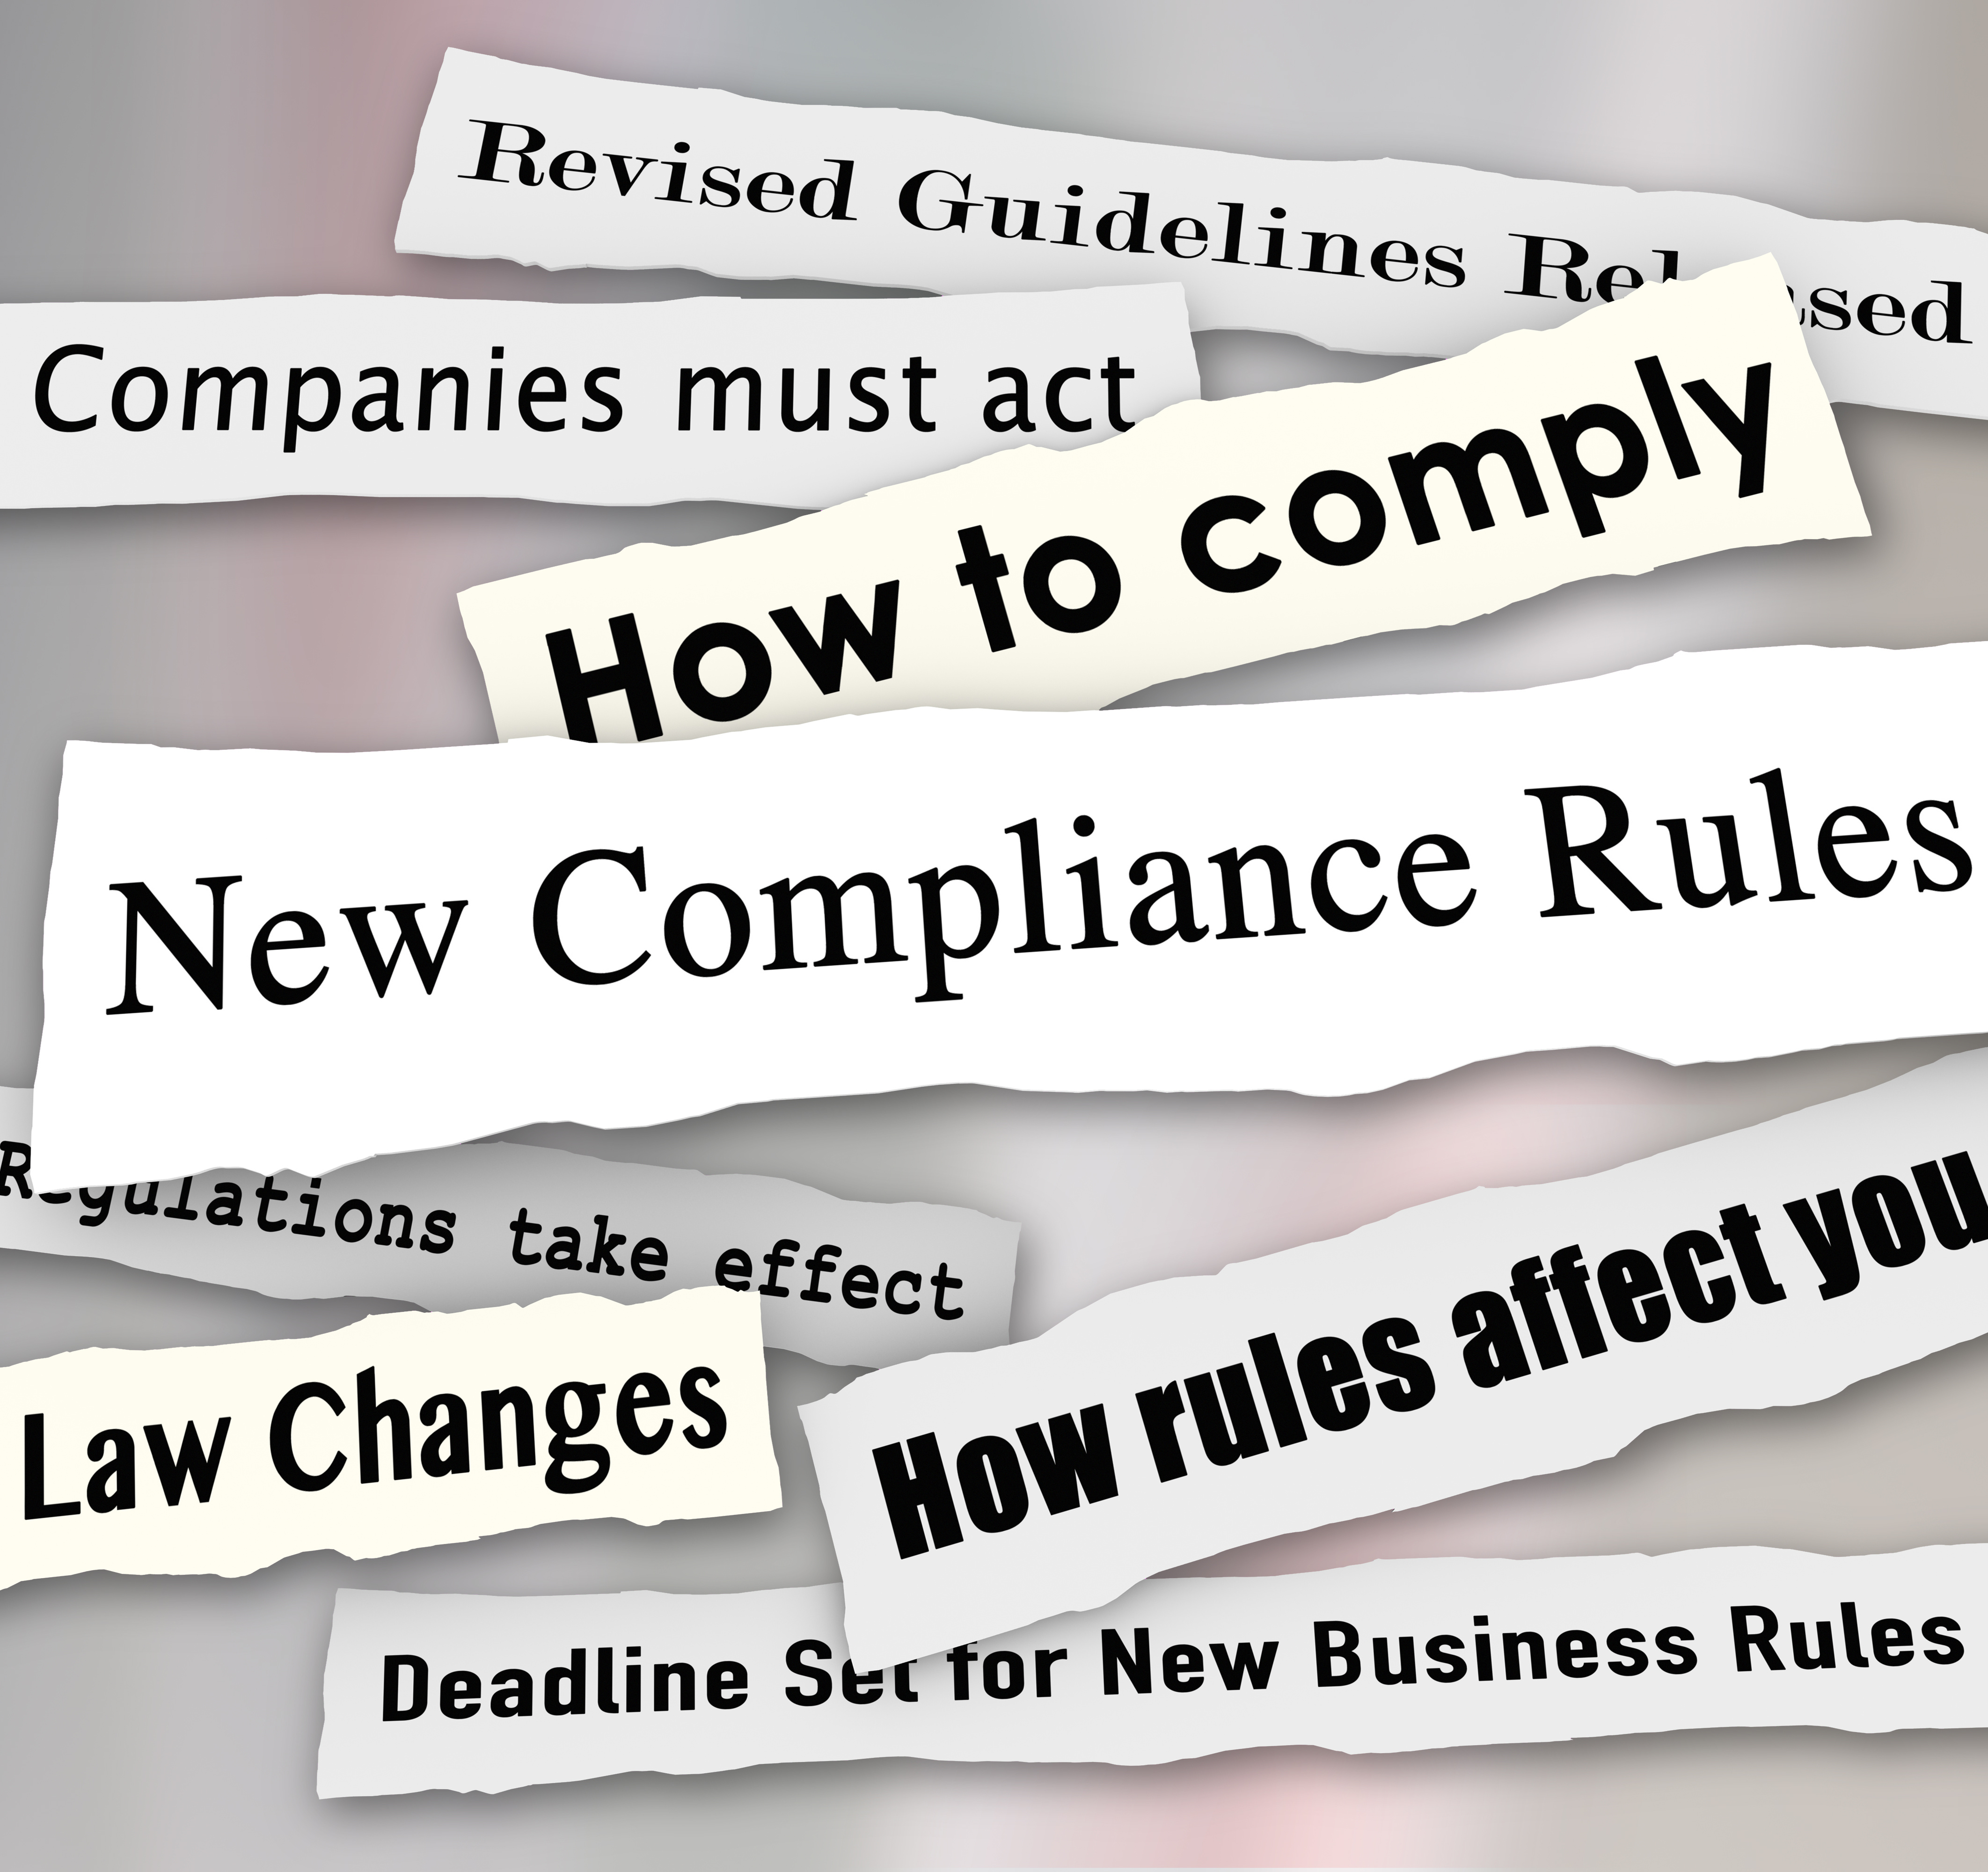 employment laws compliance plan View essay - email communication responses – no 1 employment law compliance plan from hrm 595 at university of phoenix running head: no 1 employment law compliance plan no 1 employment.